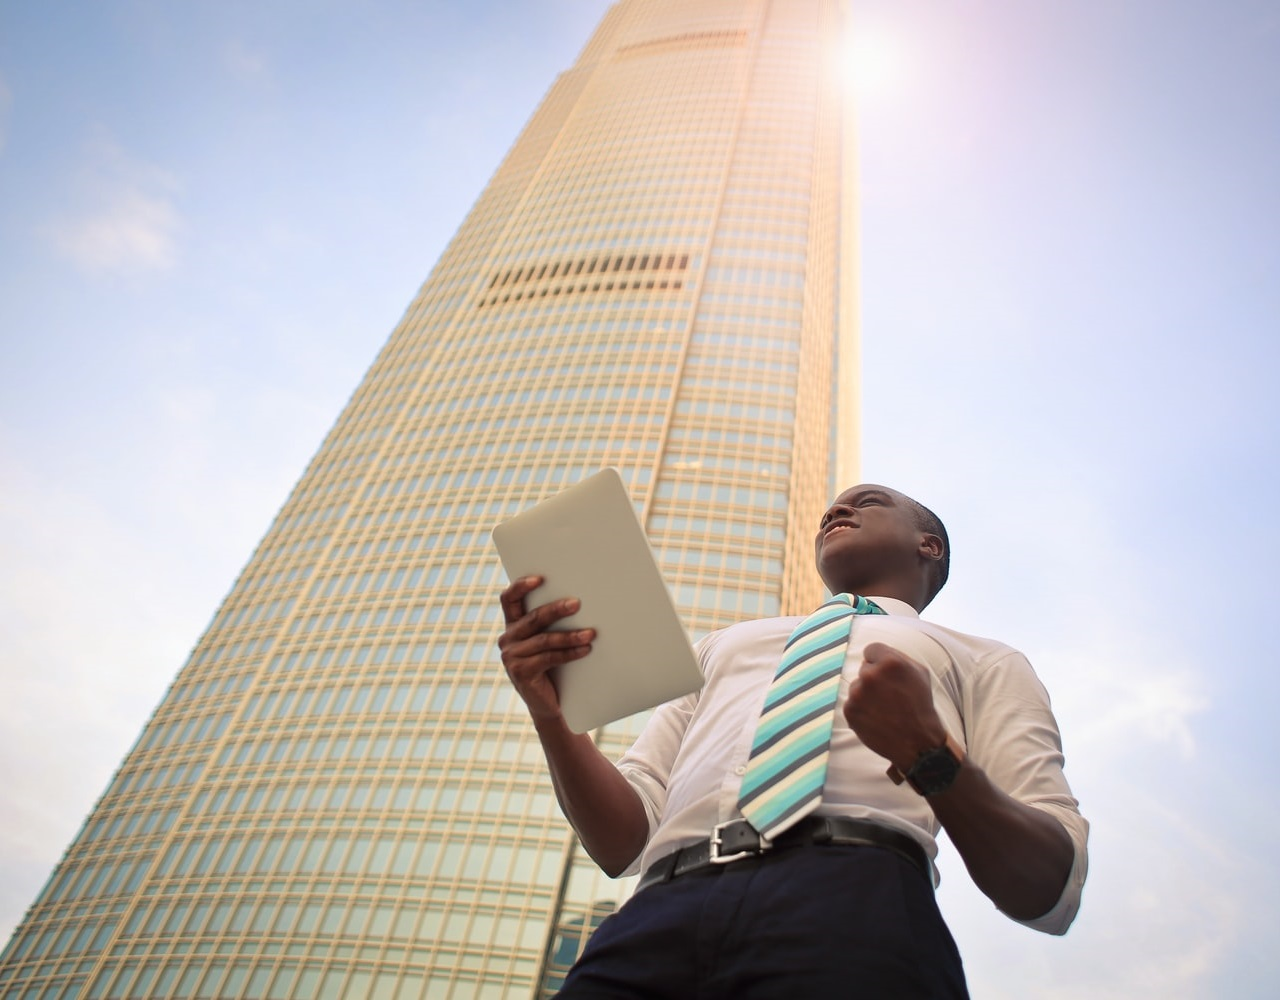 Photo of a tidily dressed young man holding documents, with the background of a tall building and a blue, sunny sky